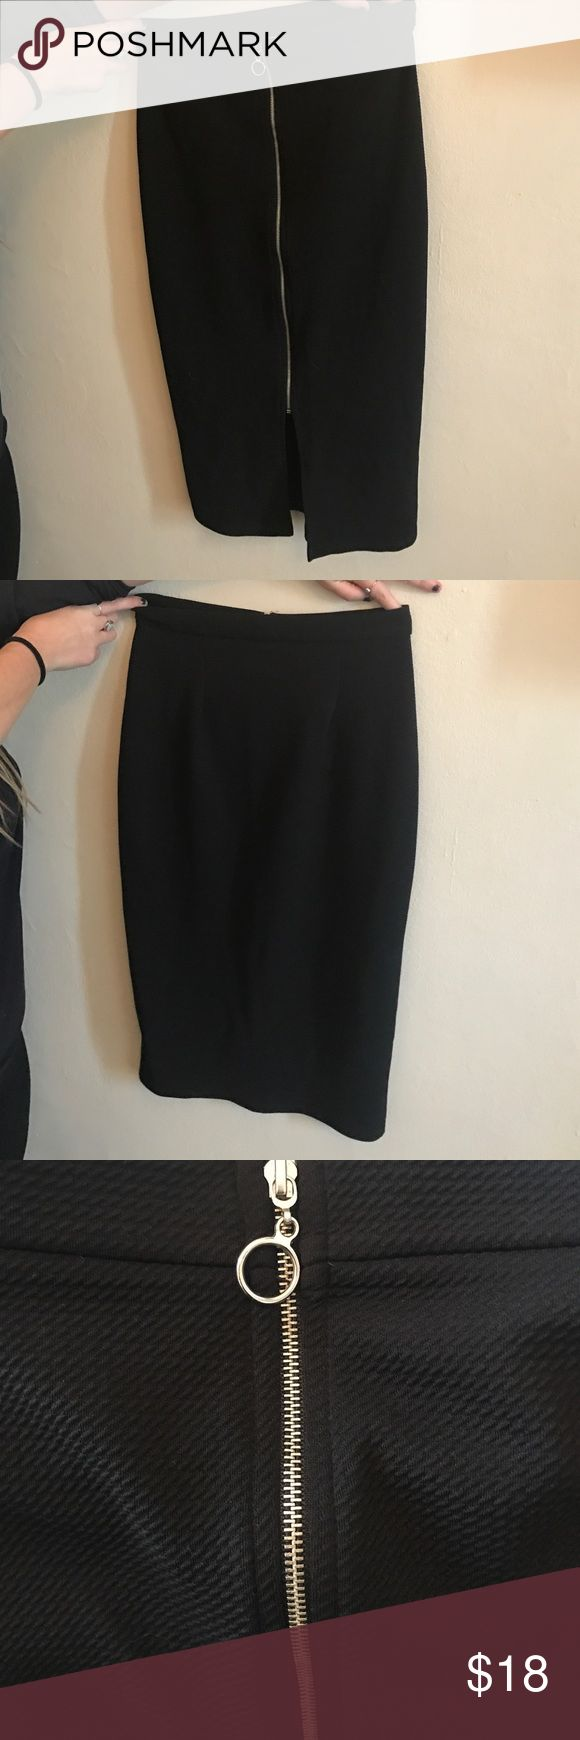 High waisted black pencil skirt High waisted long black pencil skirt! Never worn. Has a zipper down the back along with a slit maitai Skirts Pencil